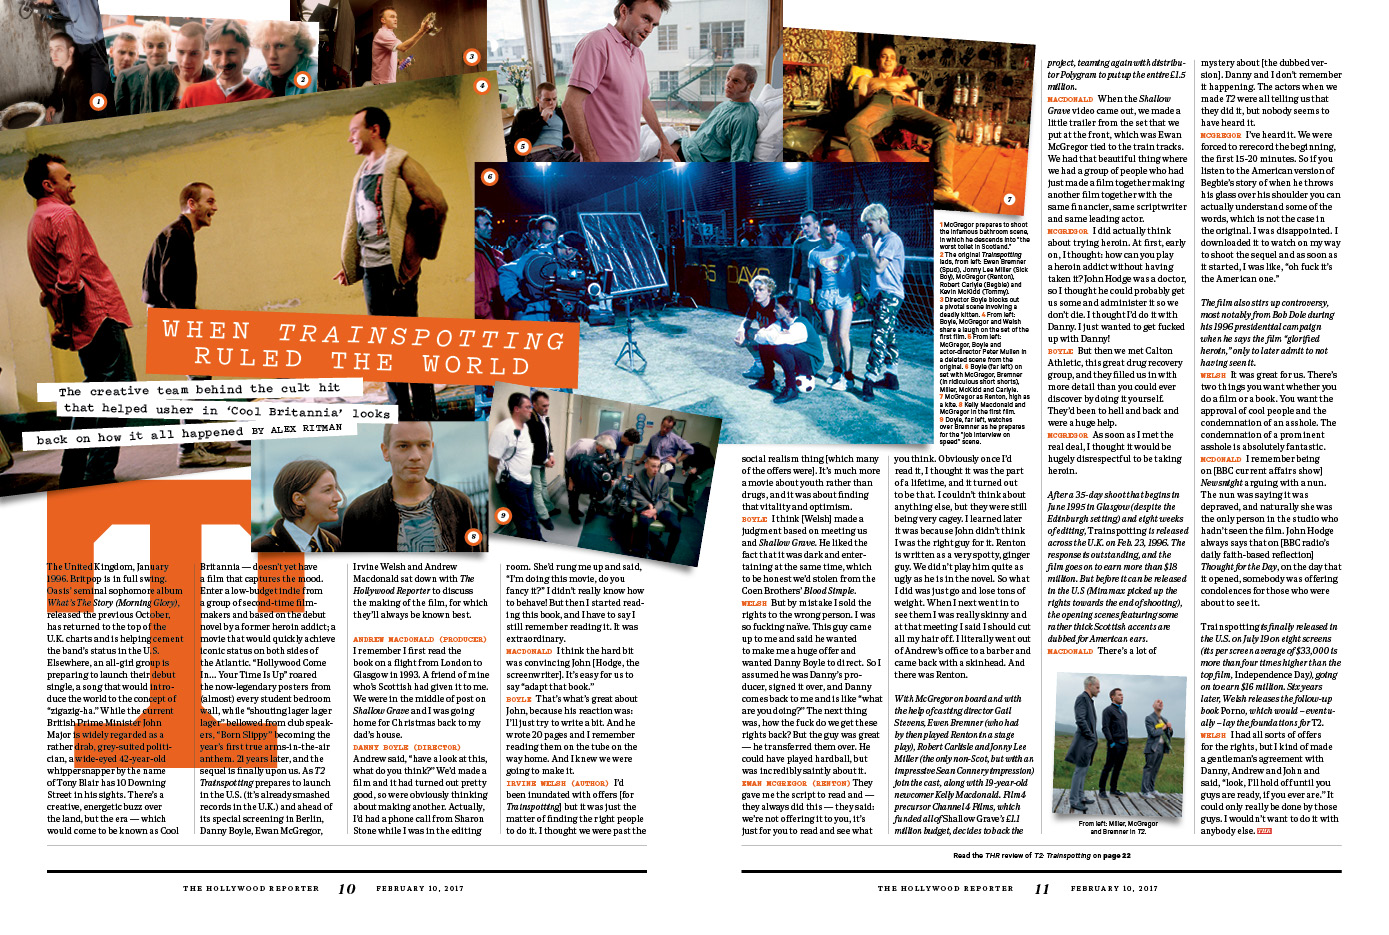 When Trainspotting Ruled the World / The Hollywood Reporter / Berlinale 2017 / kelsey stefanson / art direction + graphic design / yeskelsey.com